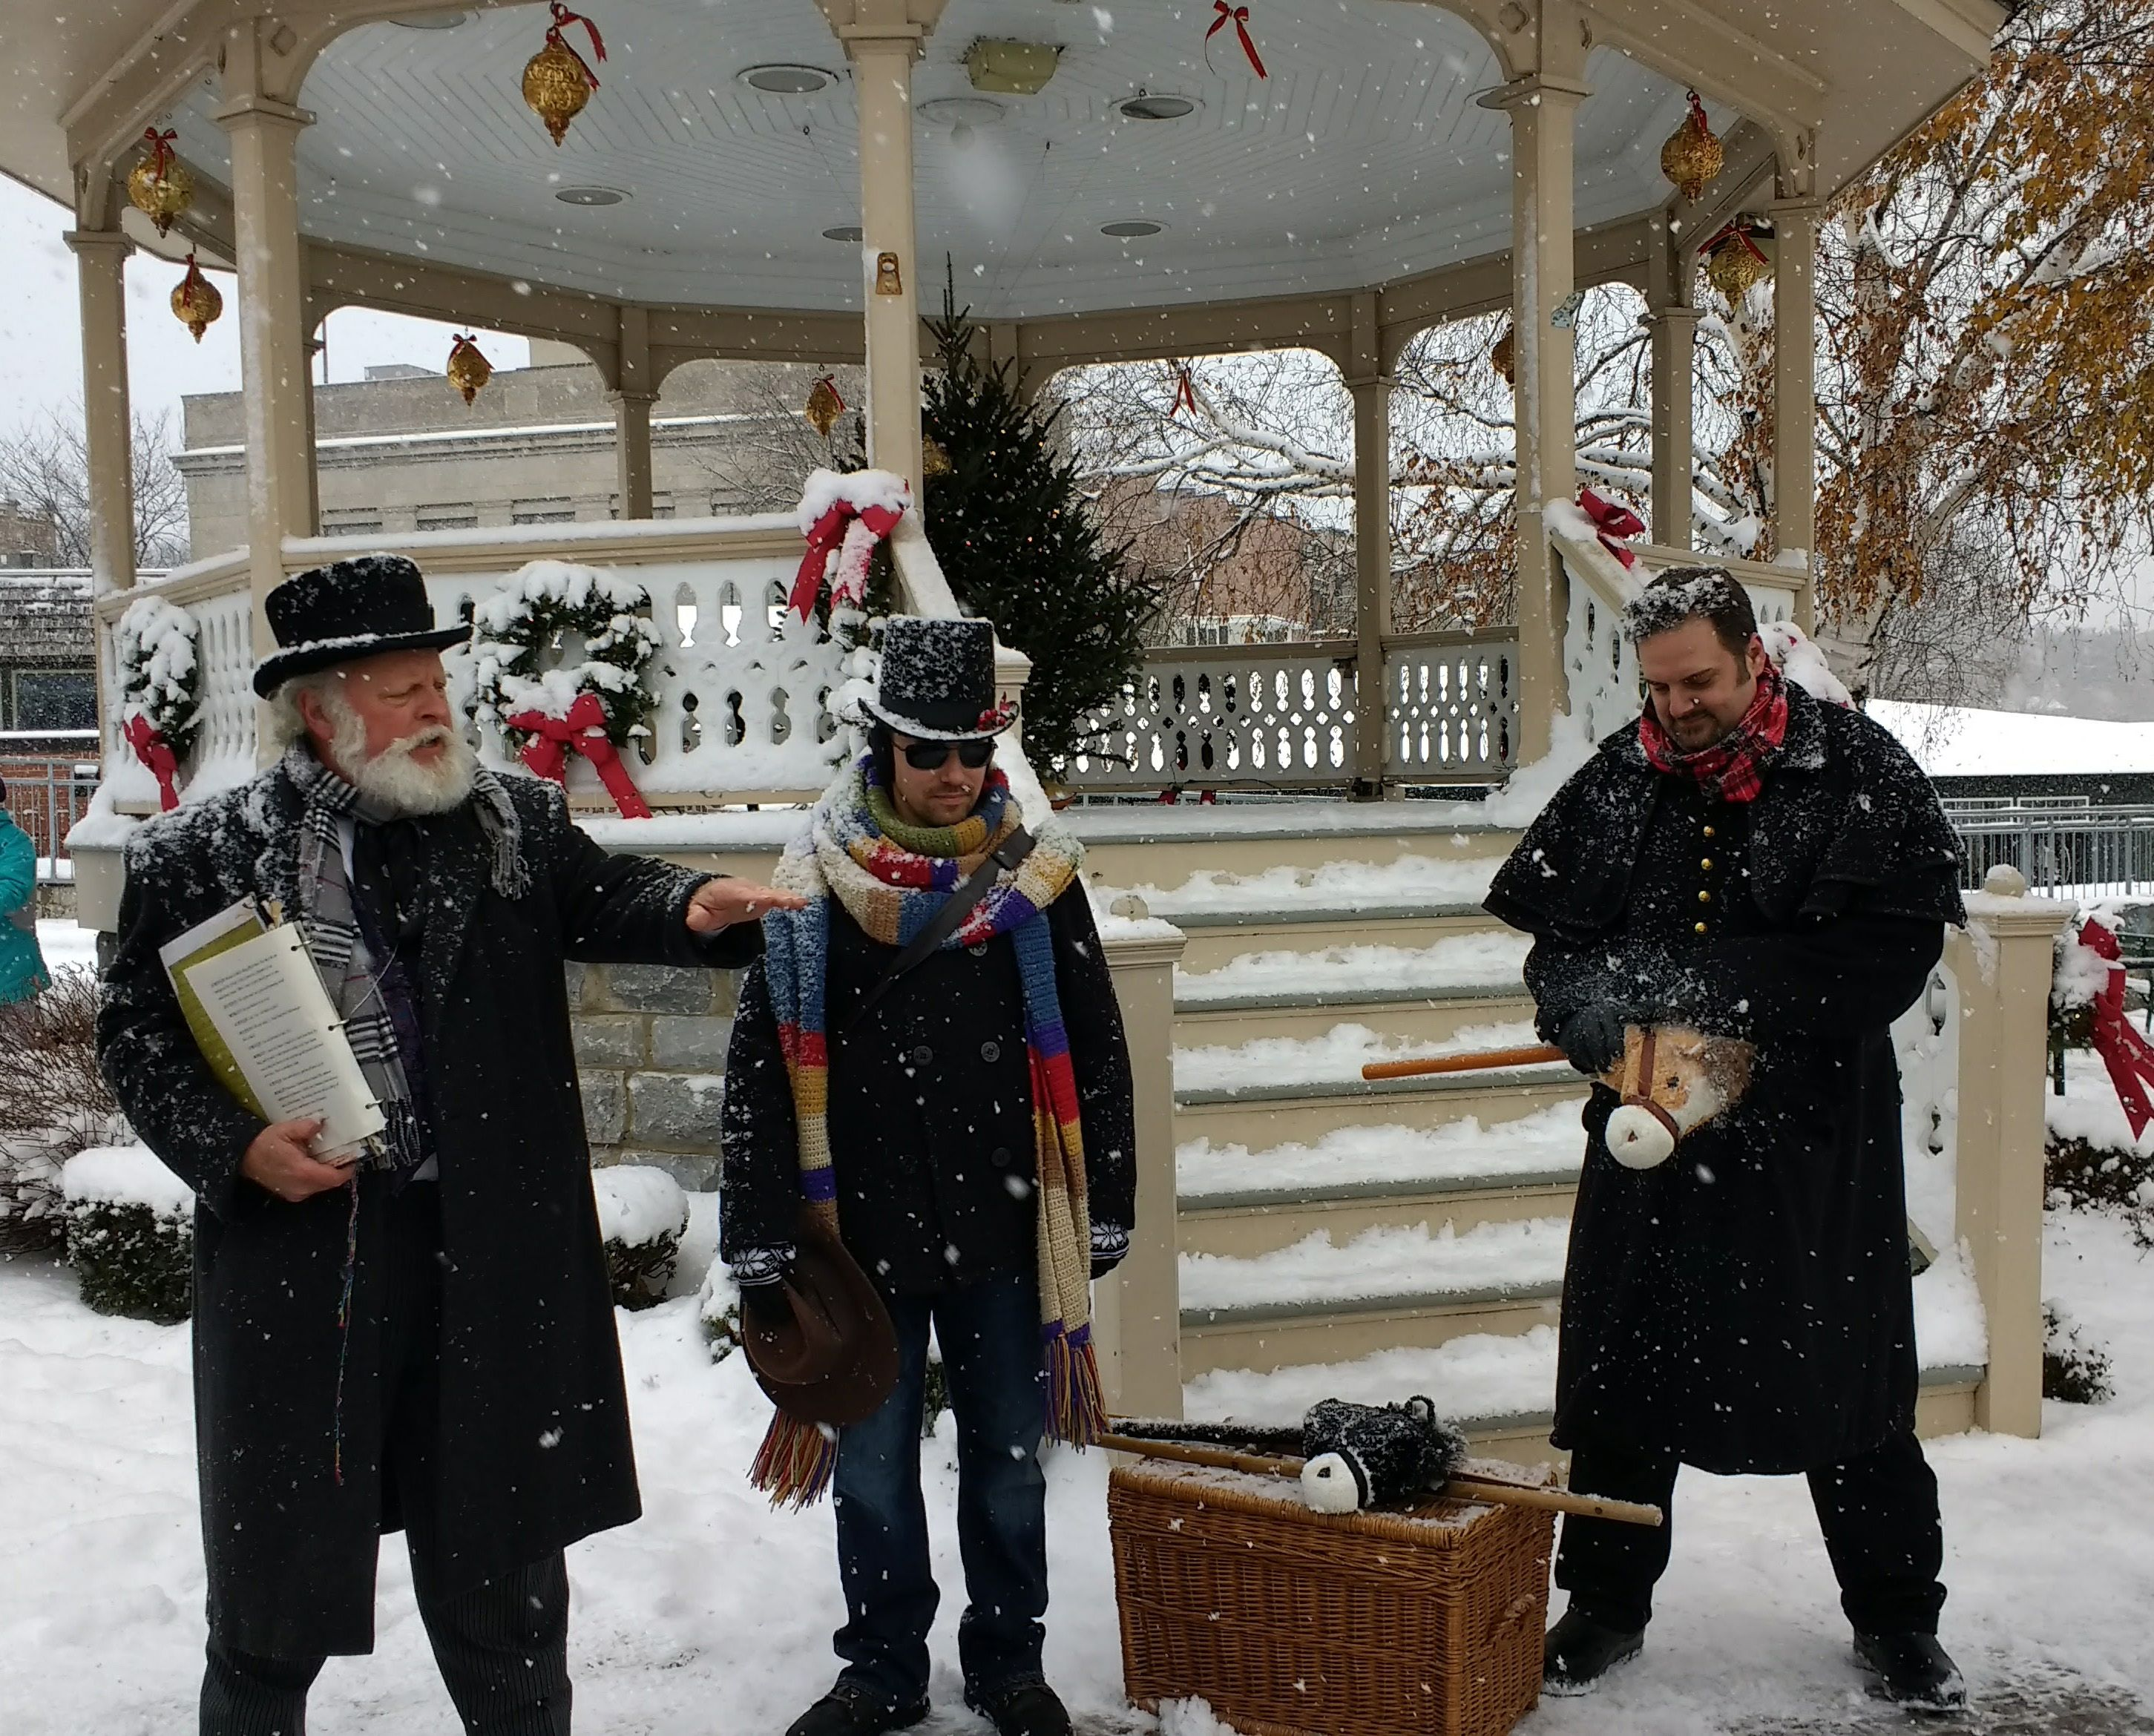 dickens christmas festival in skaneateles ny a christmas carol festival in upstate new york - Skaneateles Christmas